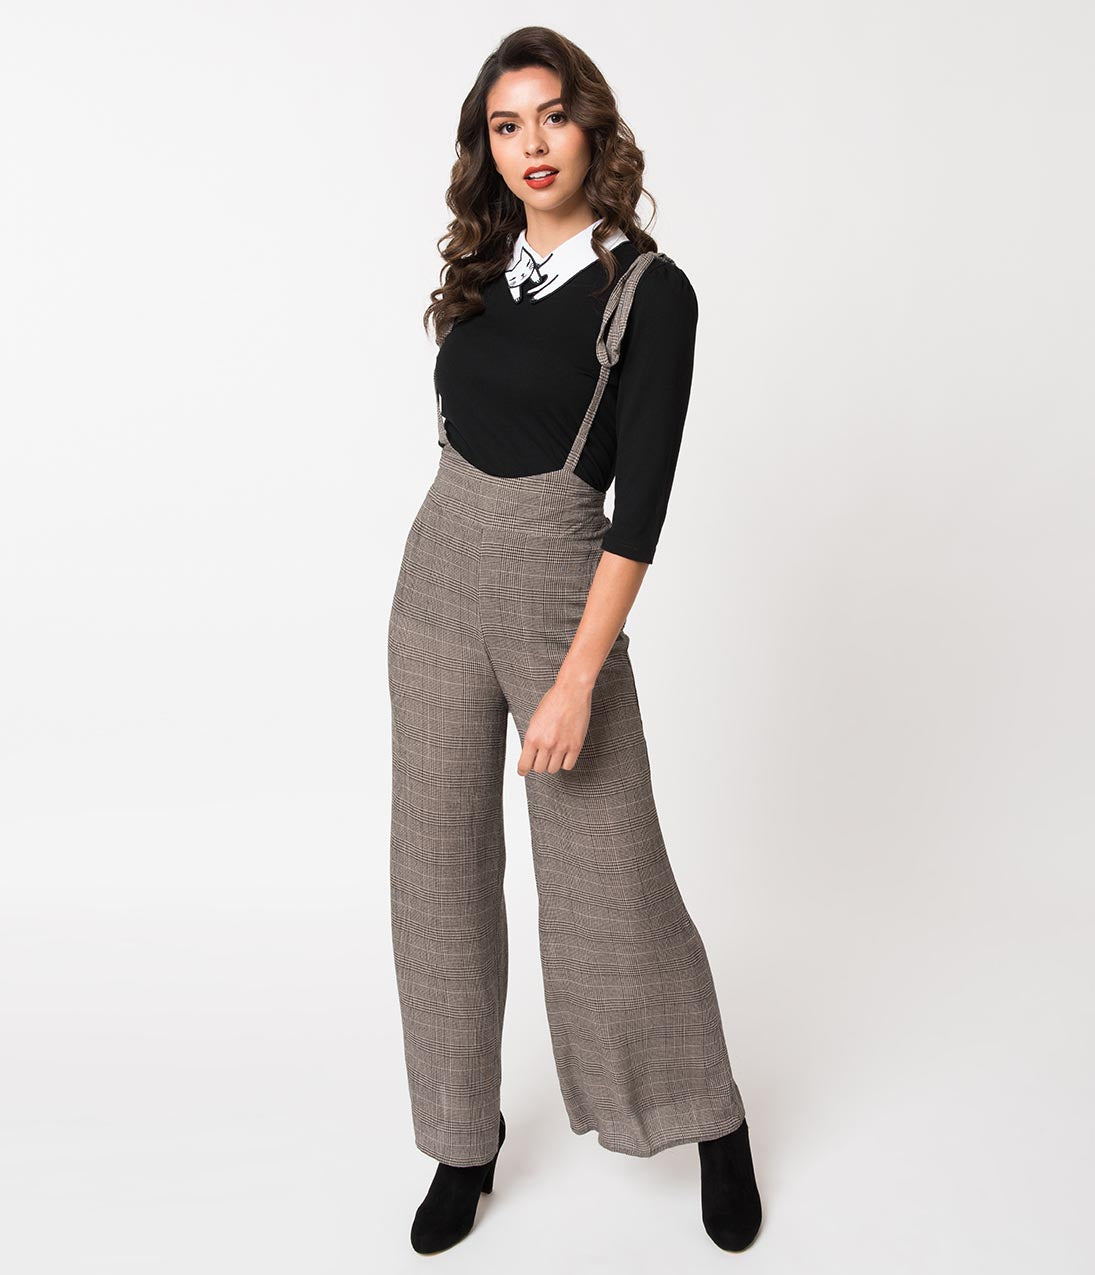 1940s Swing Pants & Sailor Trousers- Wide Leg, High Waist Black  Grey Glen Check Plaid Woven Suspender Pants $38.00 AT vintagedancer.com